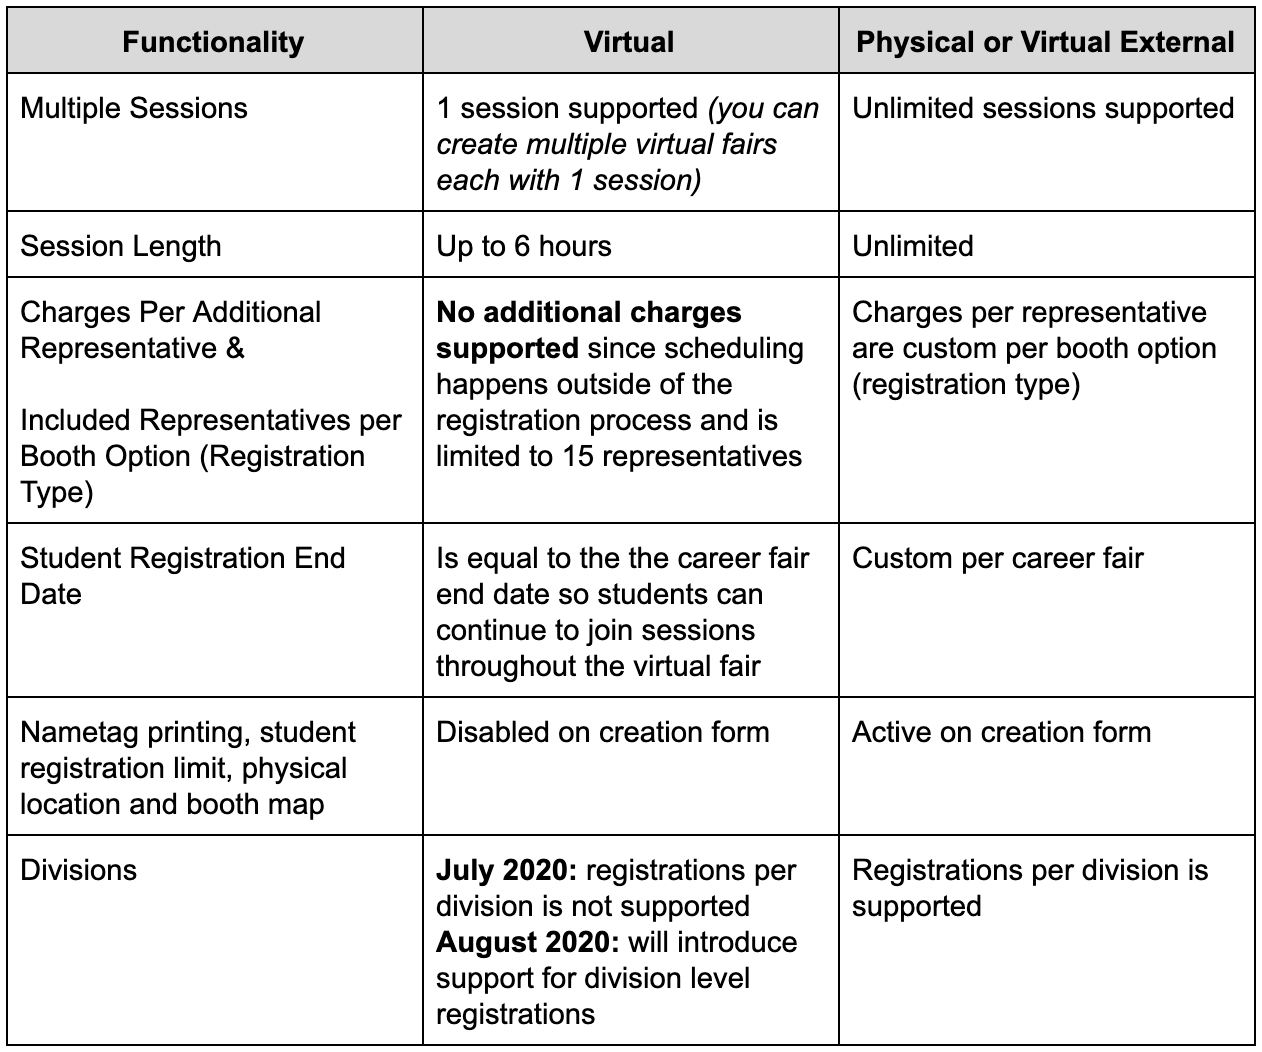 differences_in_virtual_and_physical_fairs.png